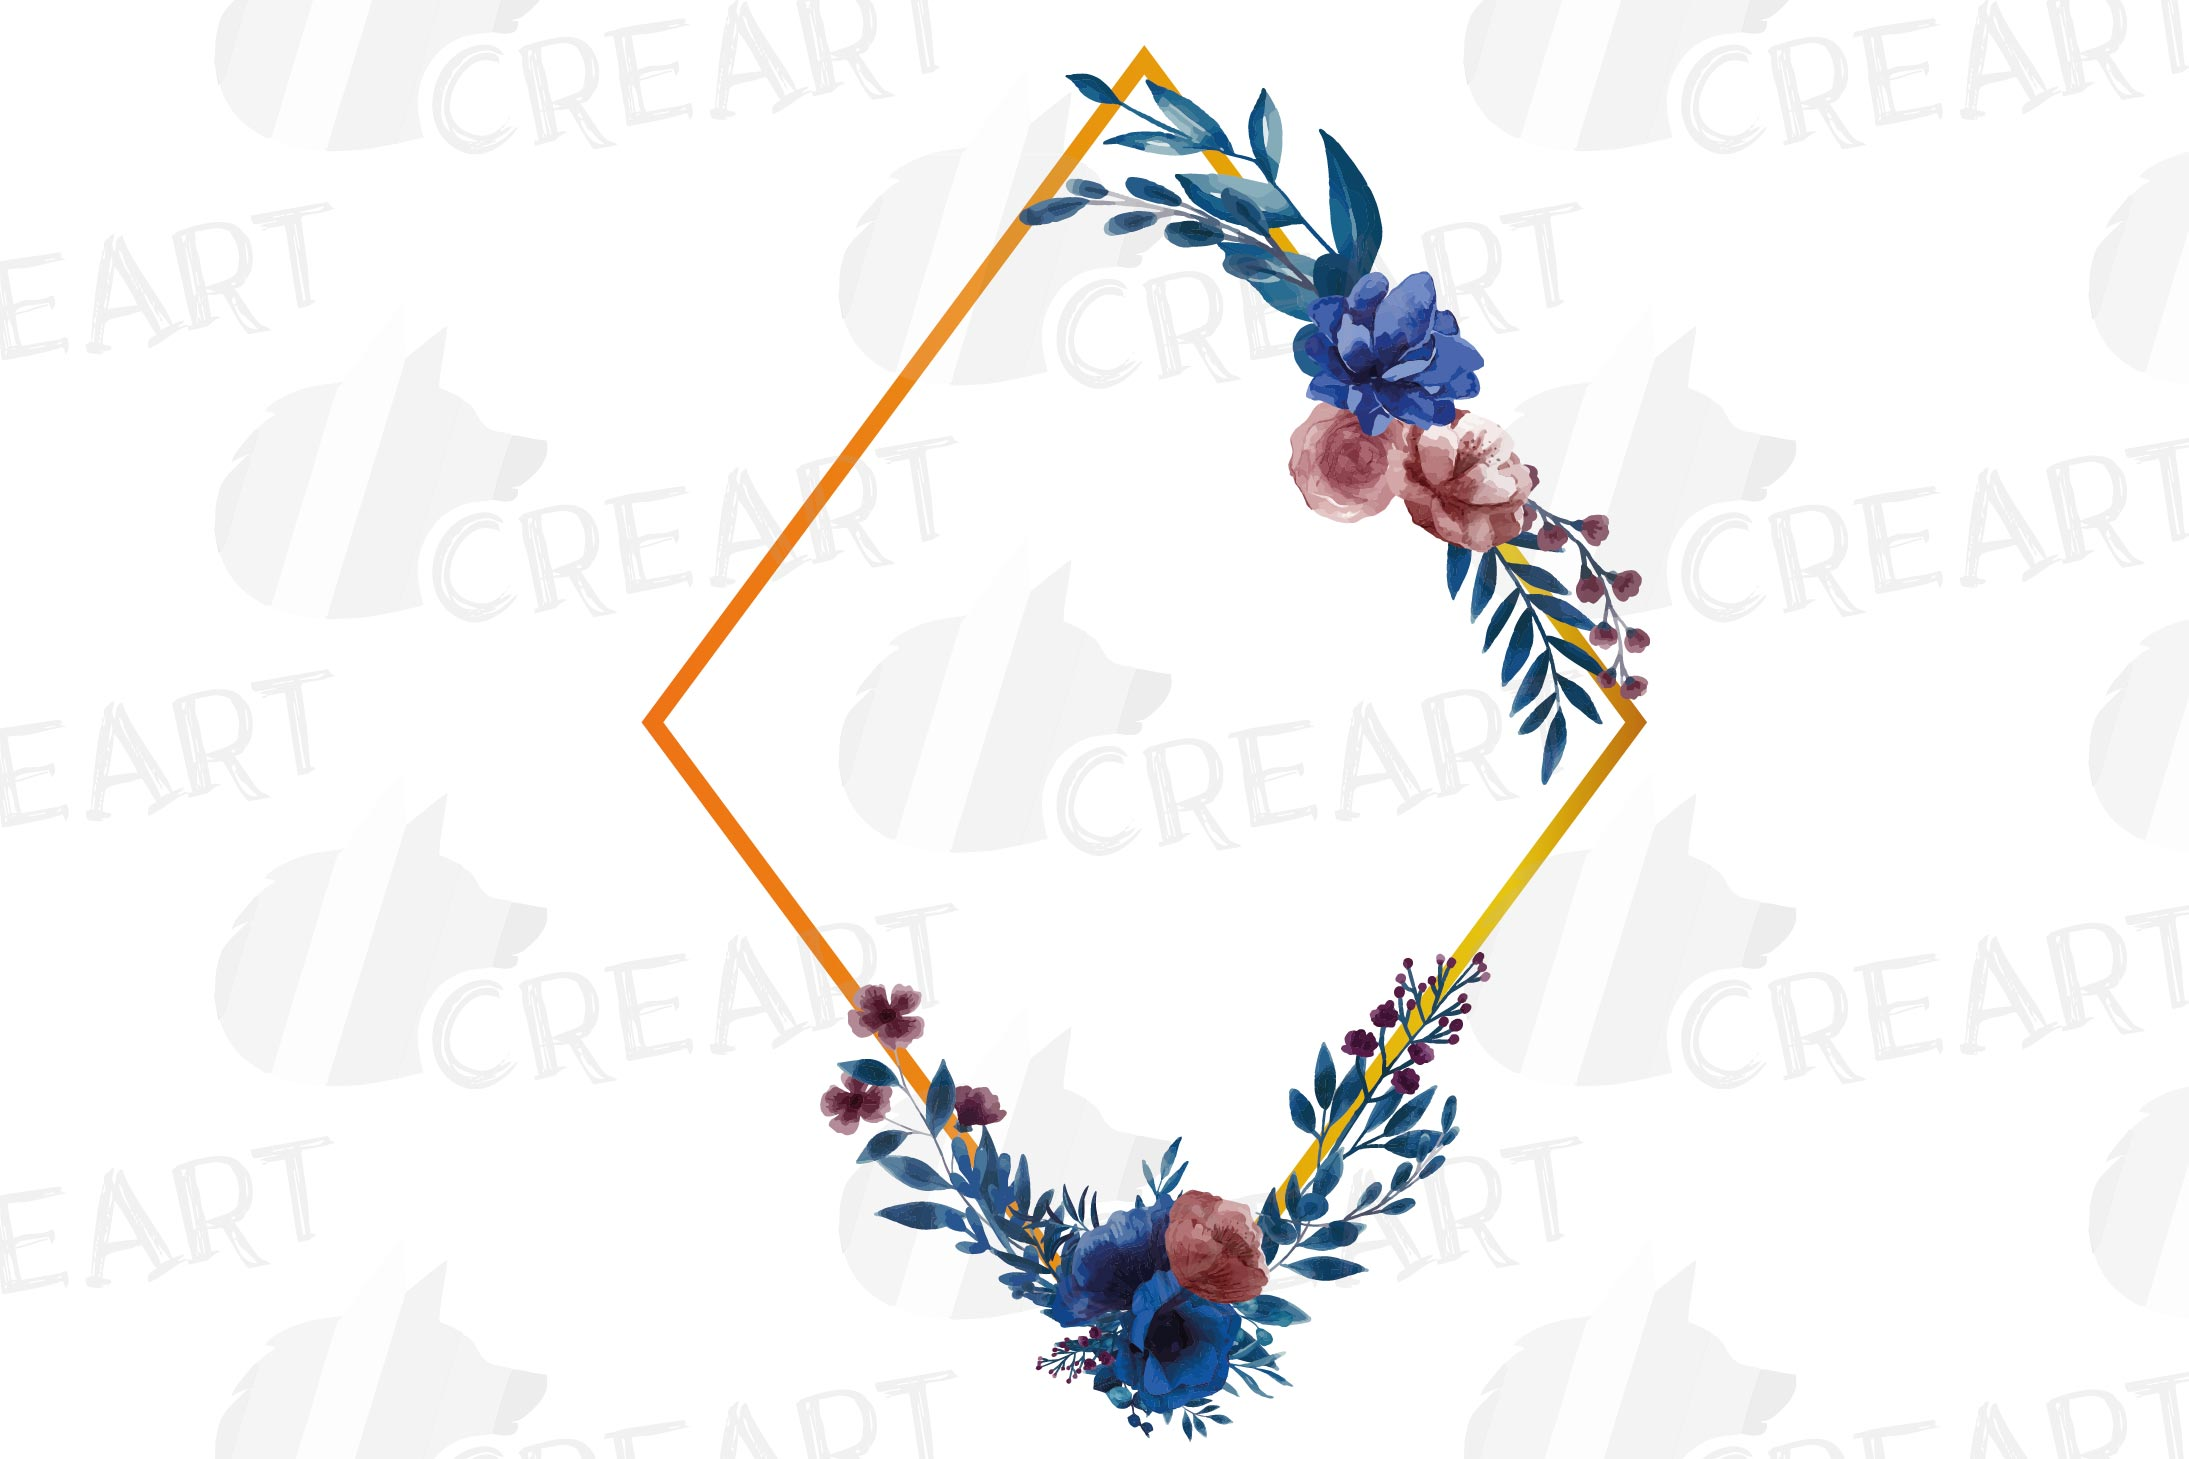 Watercolor elegant navy blue and blush floral borders vector example image 3